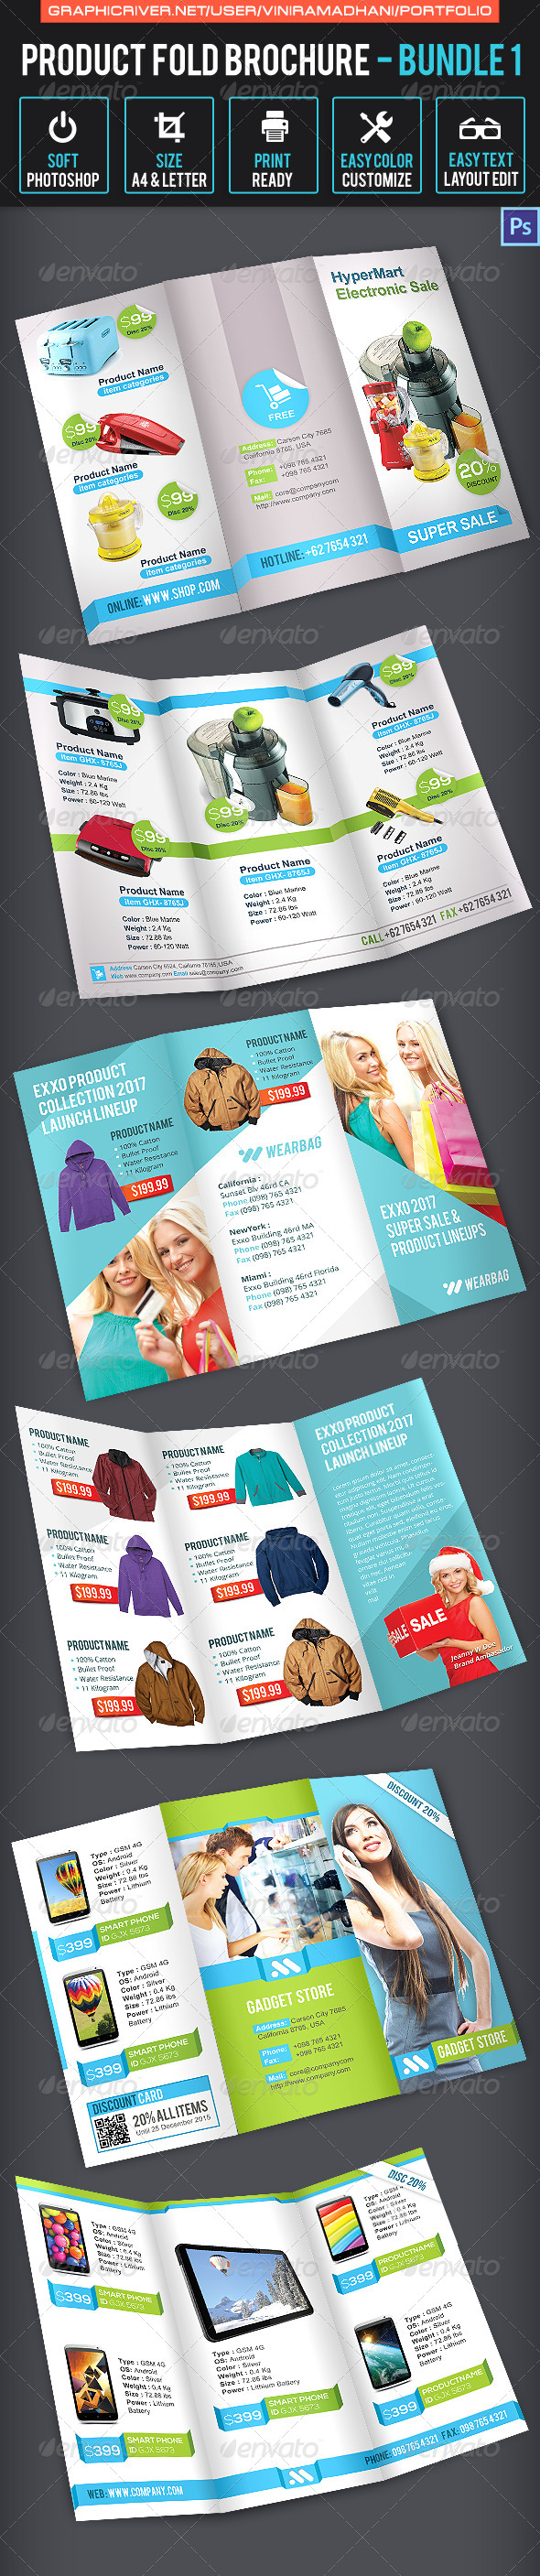 GraphicRiver Product Promotion Trifold Bundle 1 7092468